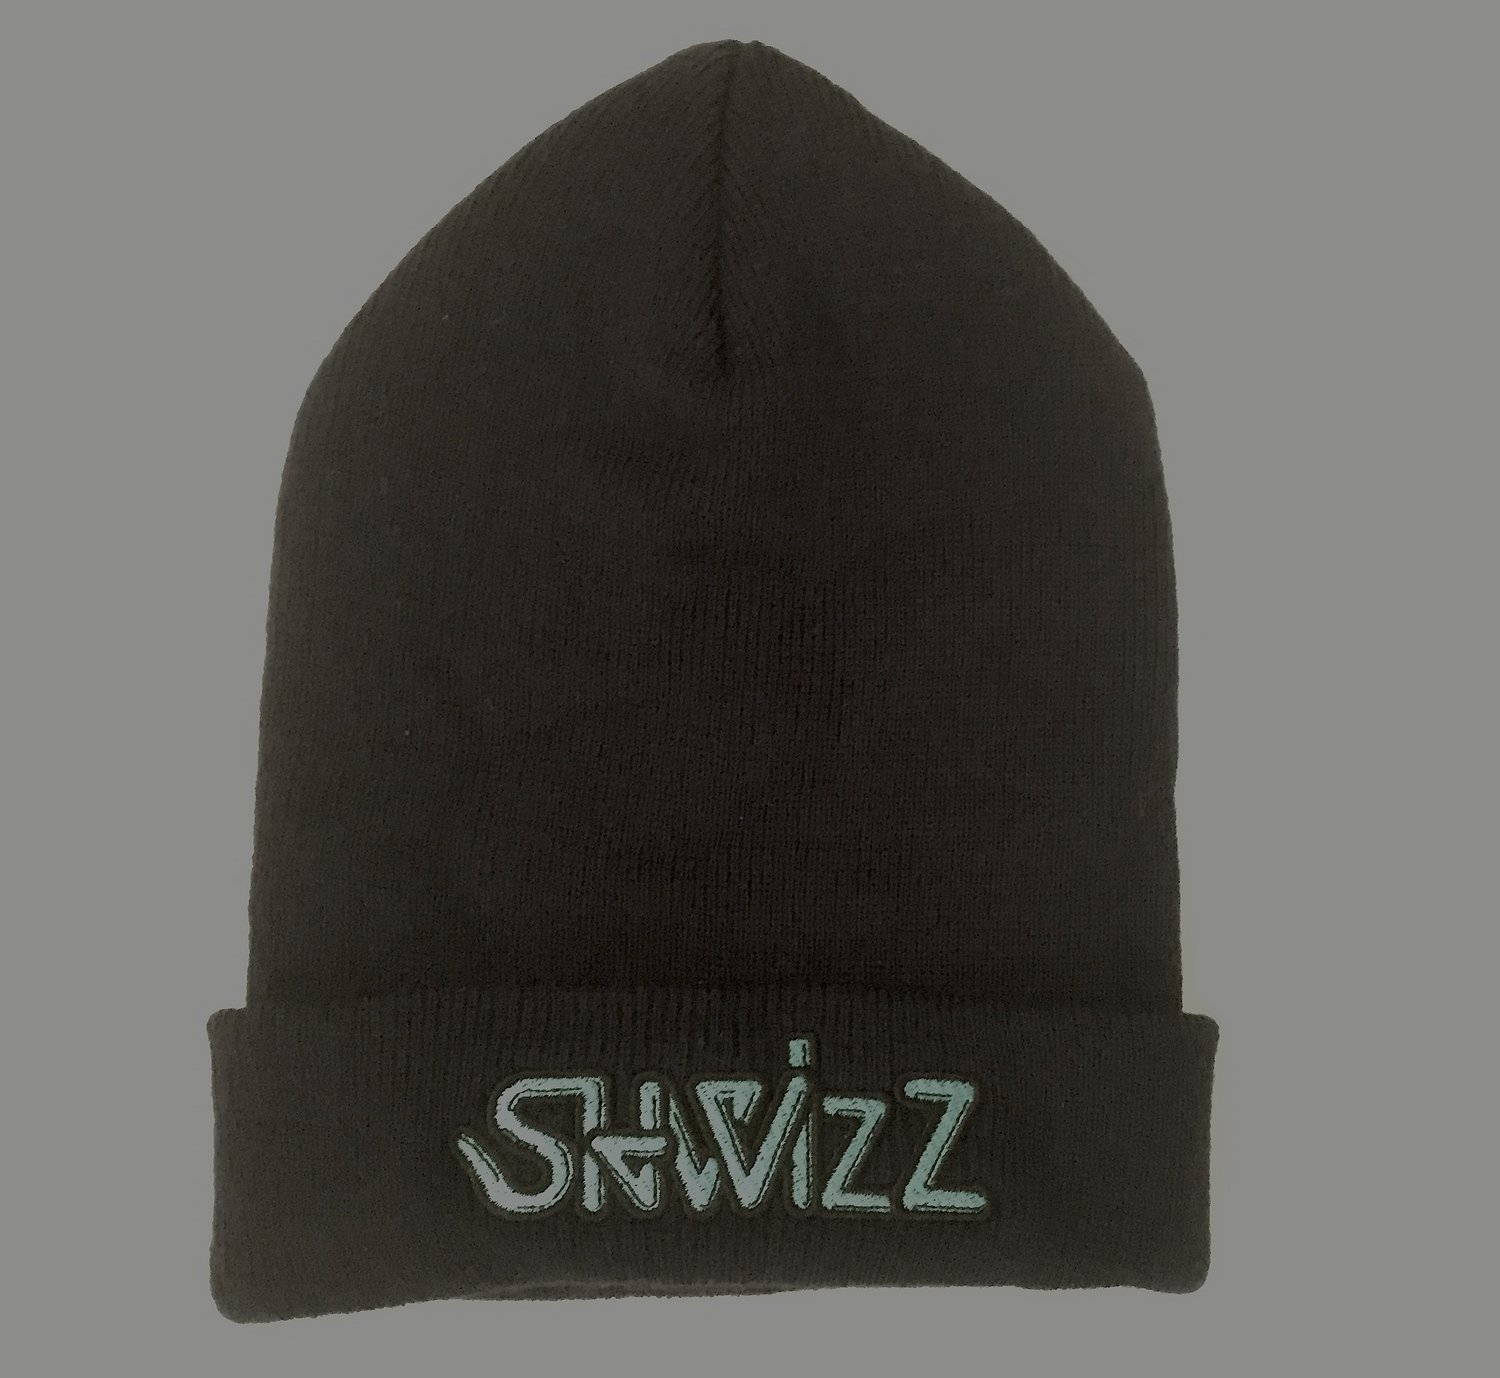 ShwizZ Beanie - Electric Blue